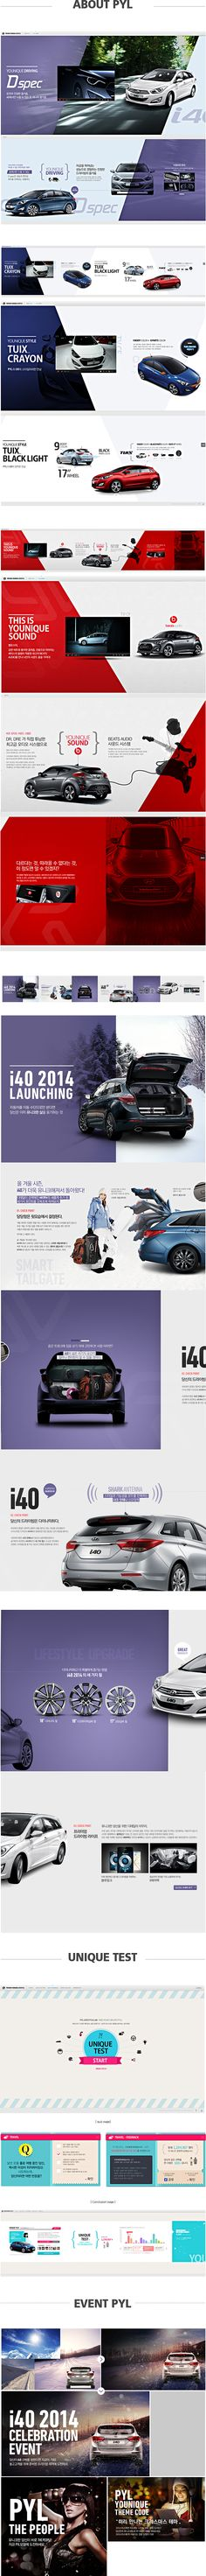 HYUNDAI_ PYL on Behance